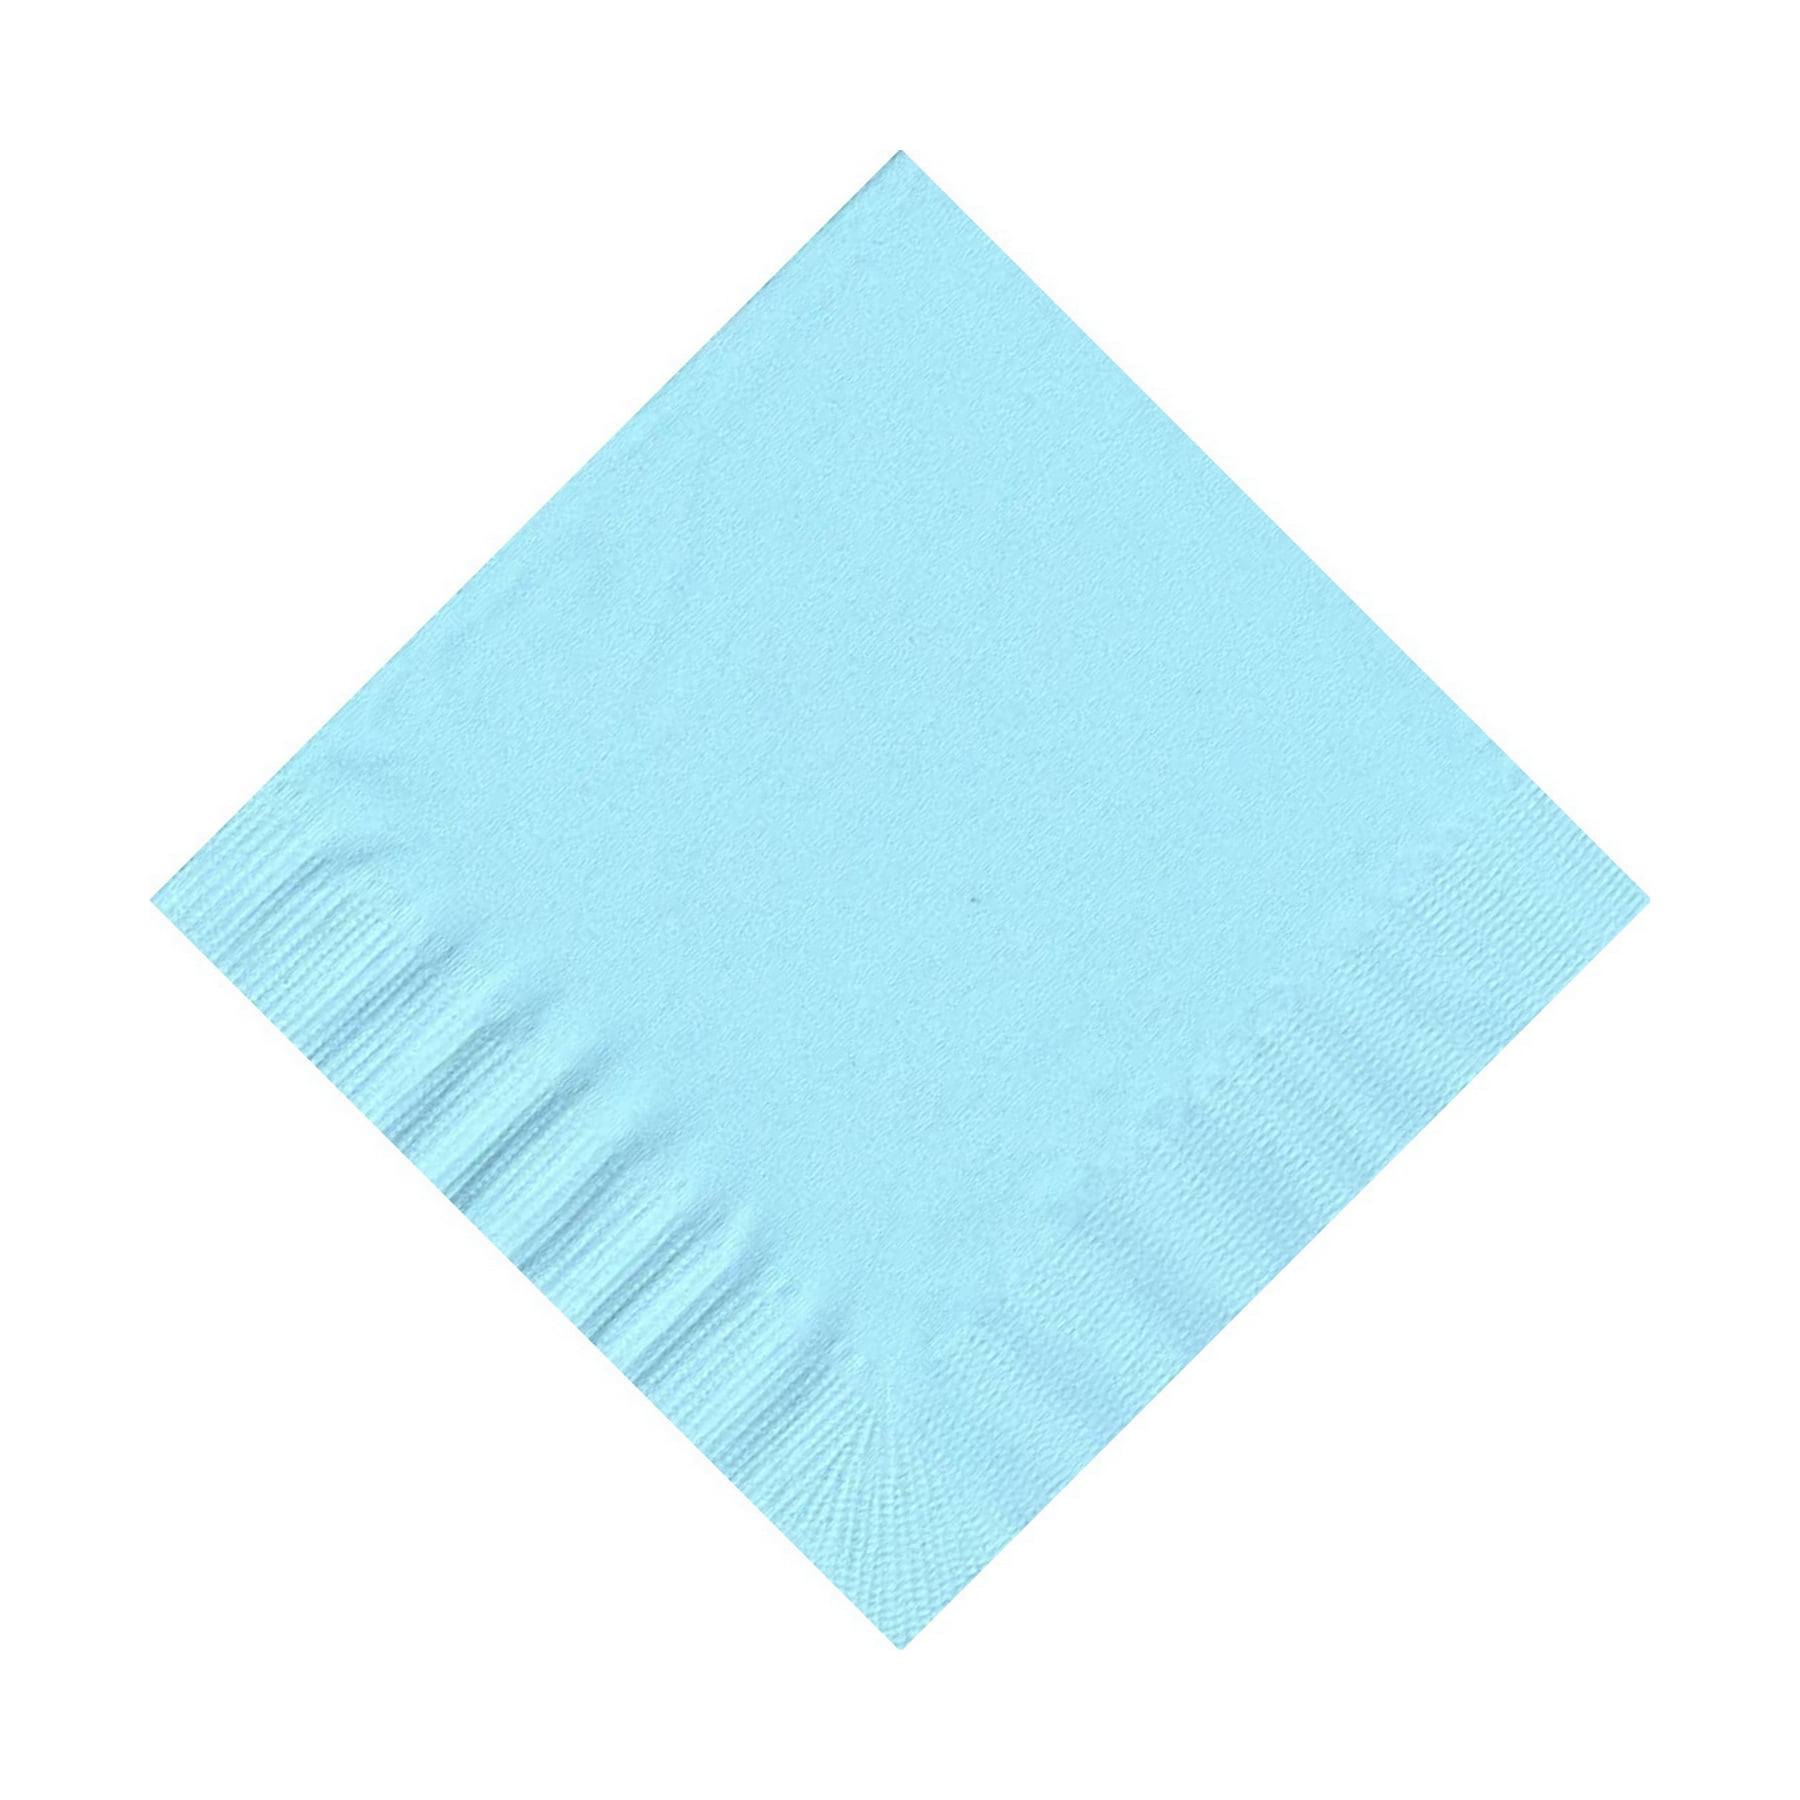 50 Plain Solid Colors Beverage Cocktail Napkins Paper Light Blue by CREATIVE CONVERTING